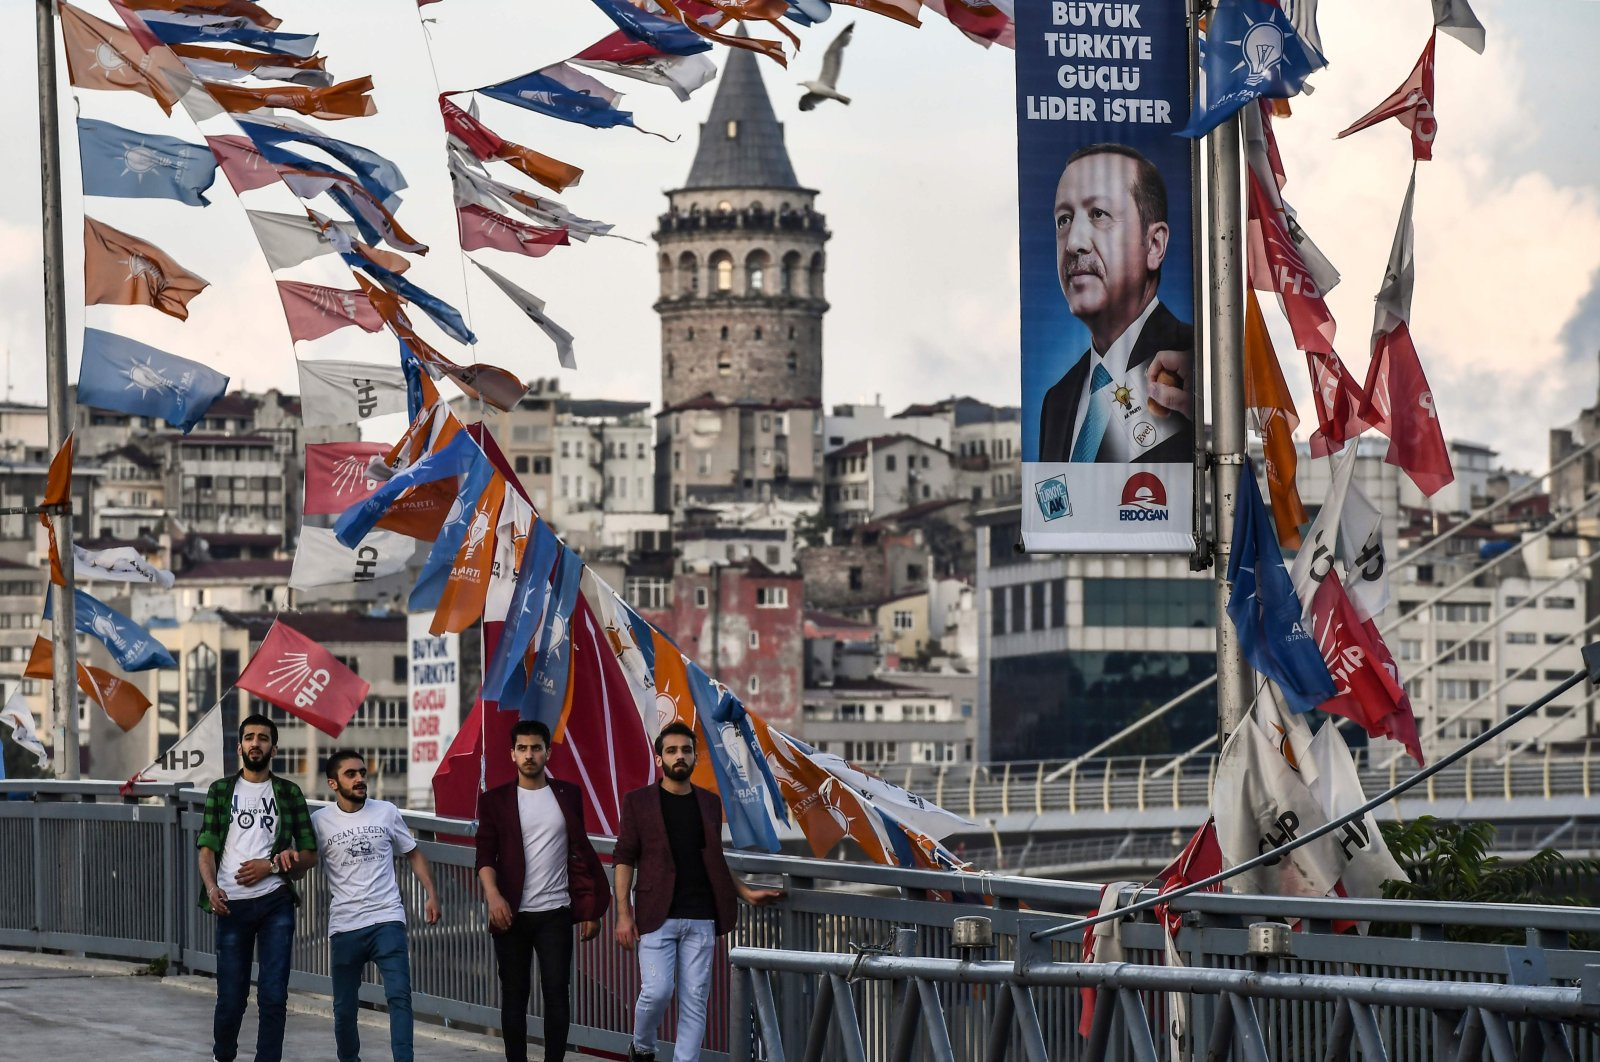 People pass by banners with the portrait of President Erdoğan in Istanbul, June 18, 2018. (AFP)